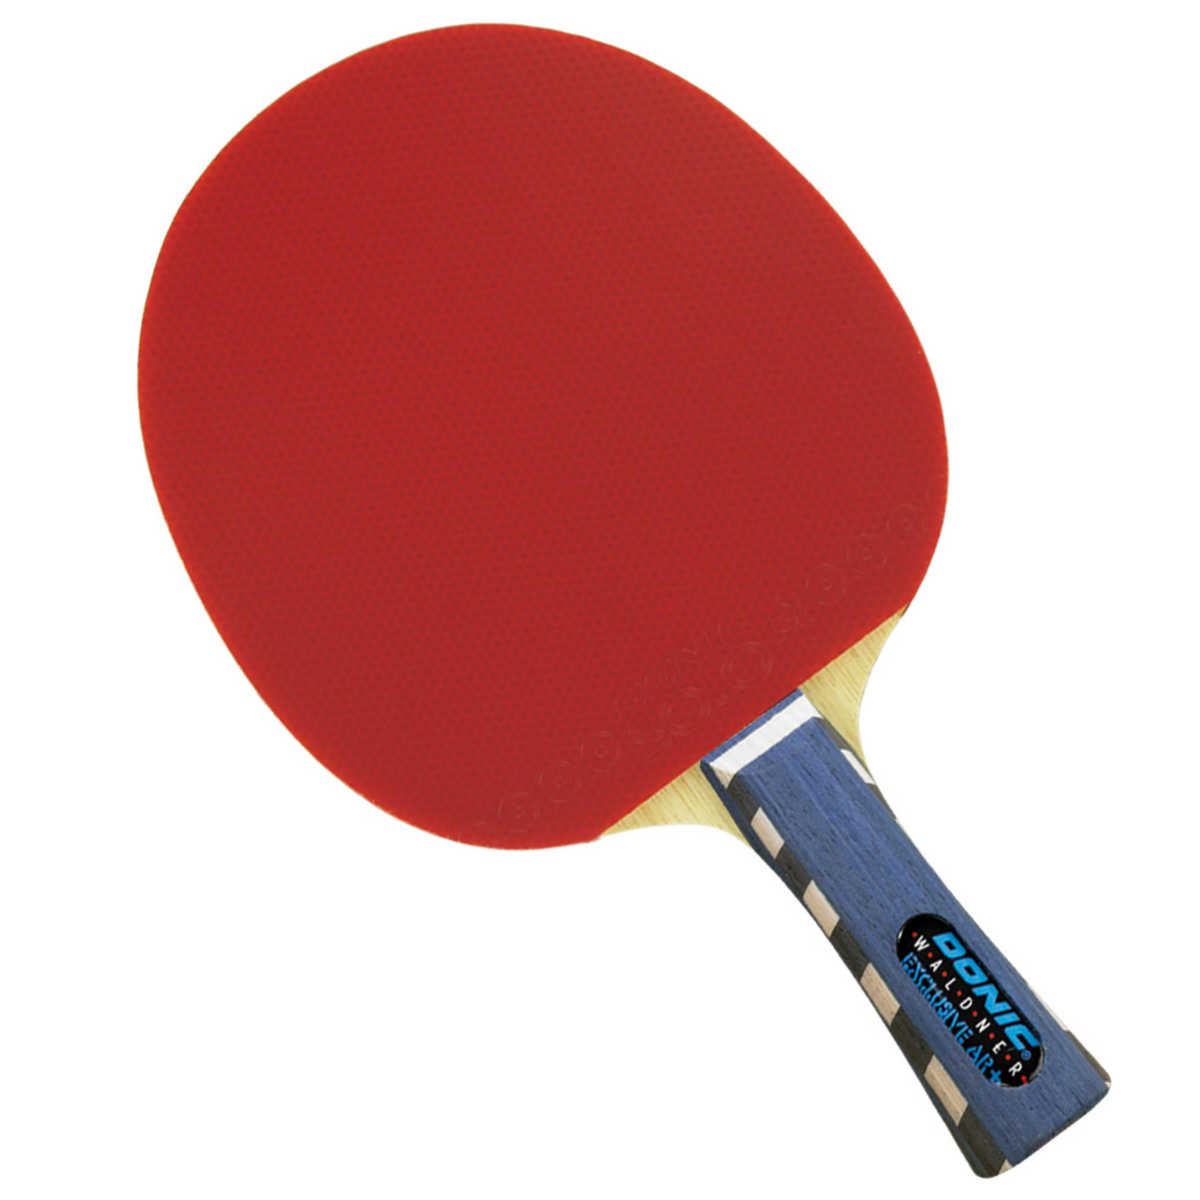 Donic tennis de table raq waldner exclusif ar twingo 1 - Choisir sa raquette de tennis de table ...